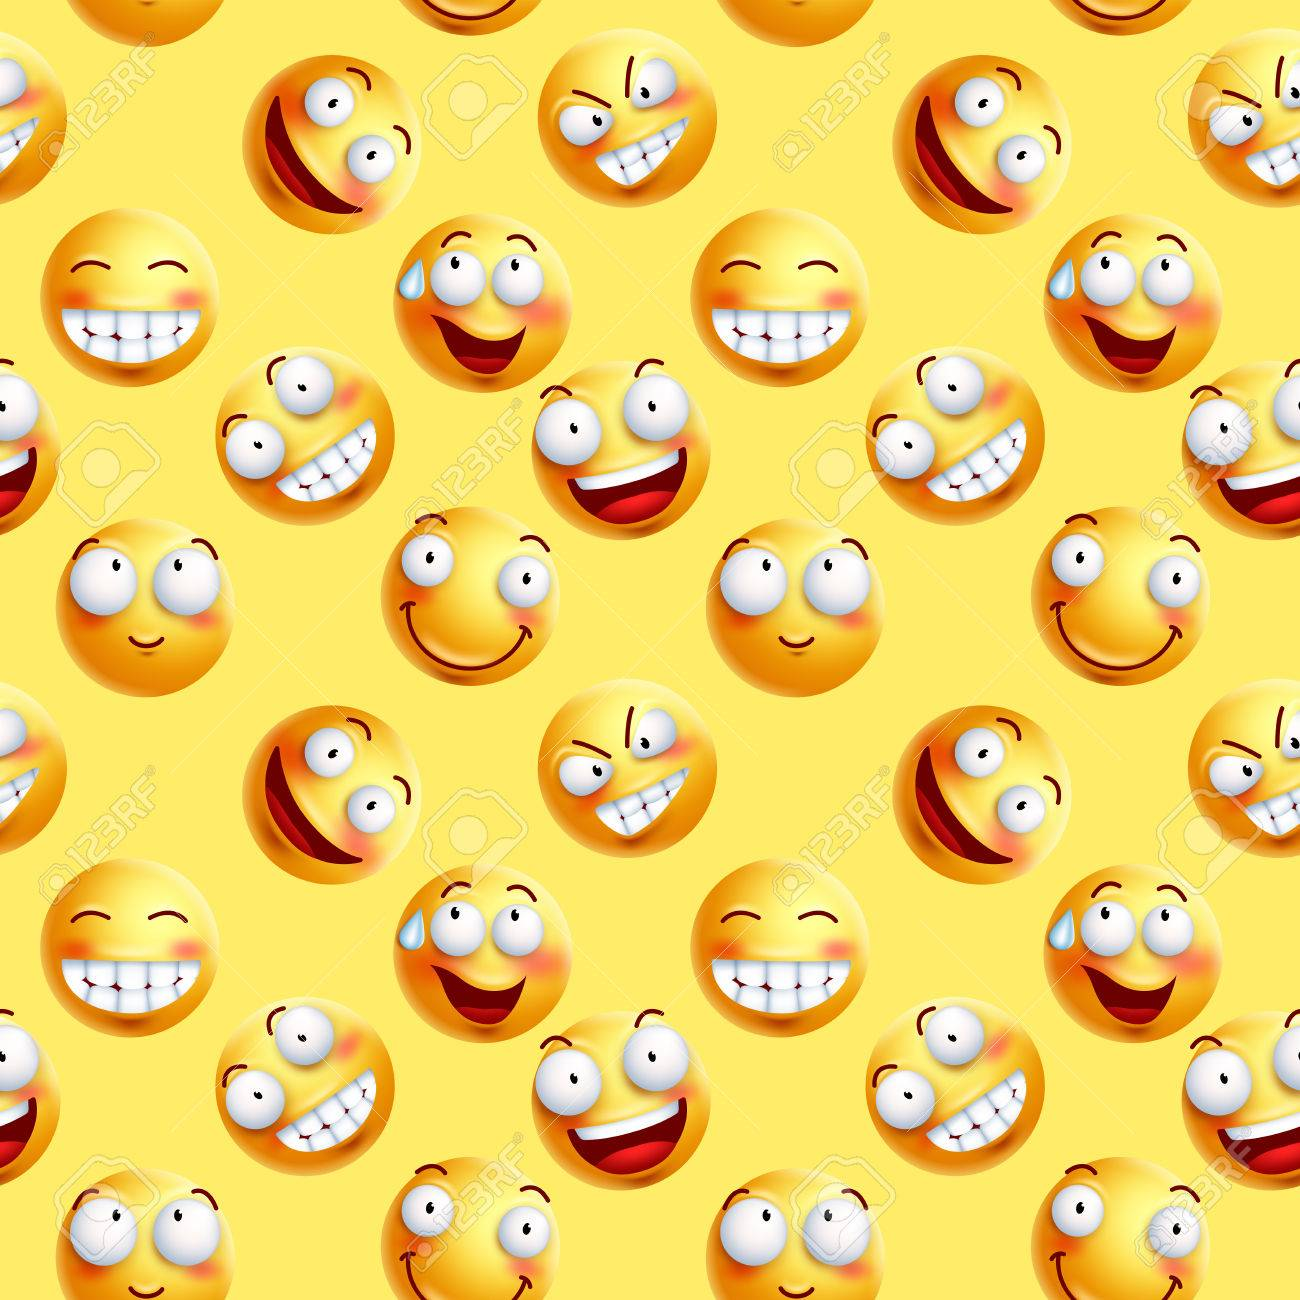 Fond D Écran Smiley vector smileys wallpaper continuous pattern with seamless facial